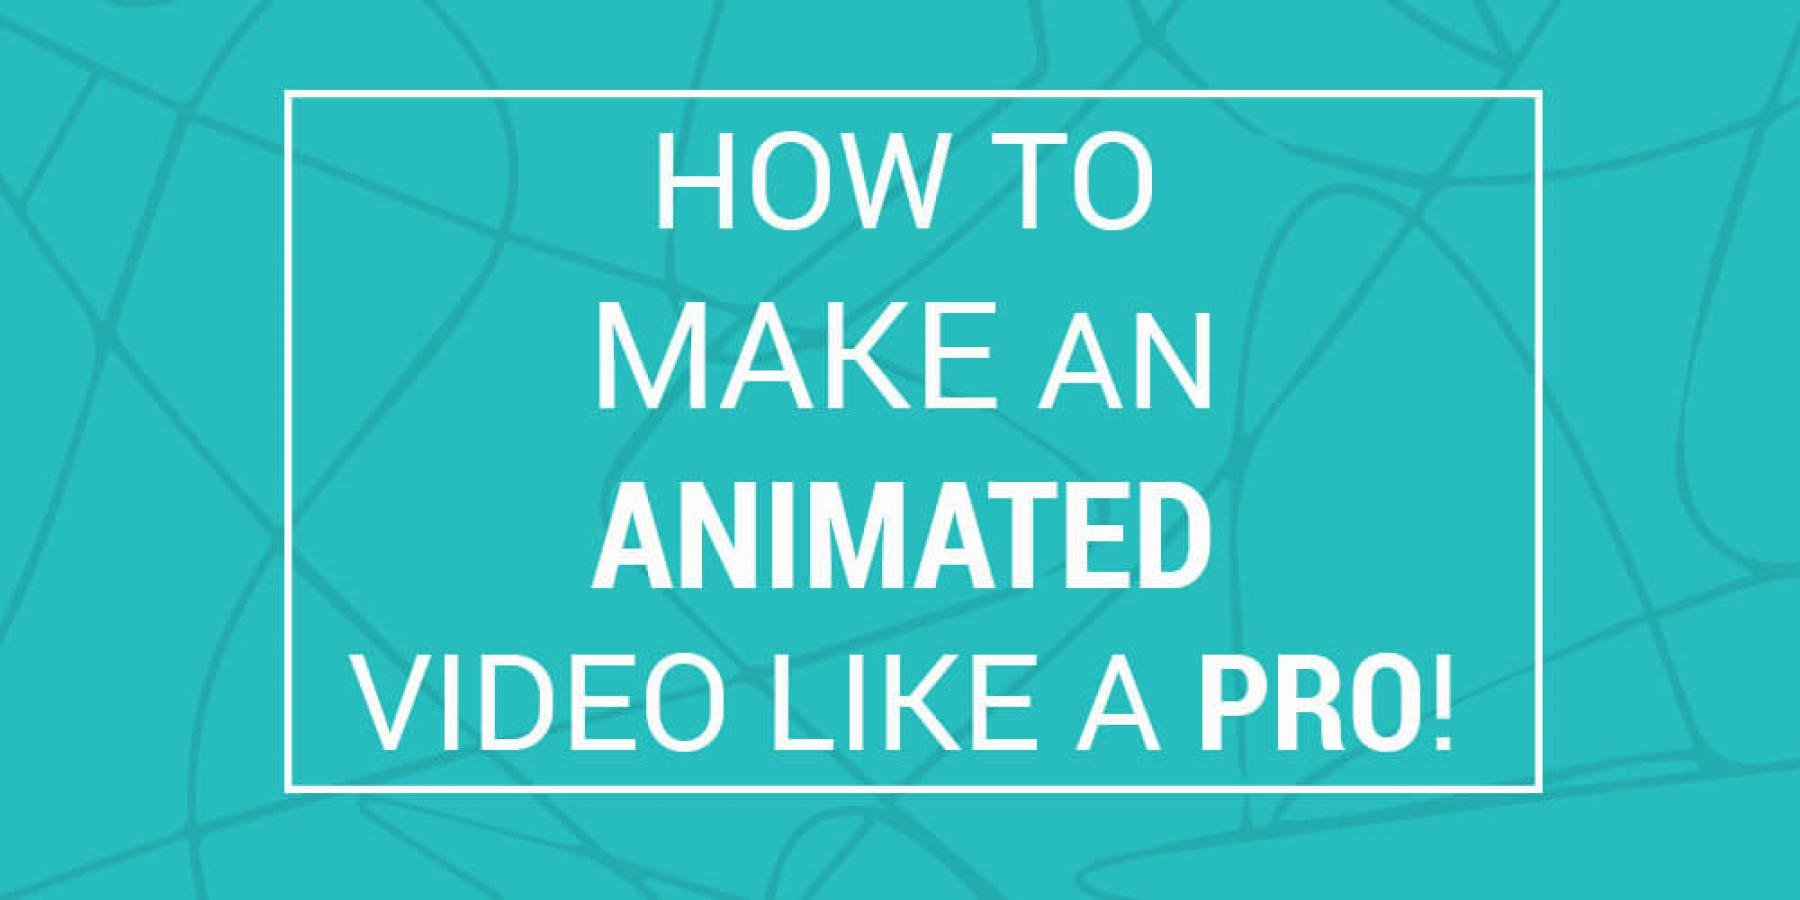 How to Make and Animated Video Like a Pro (1)